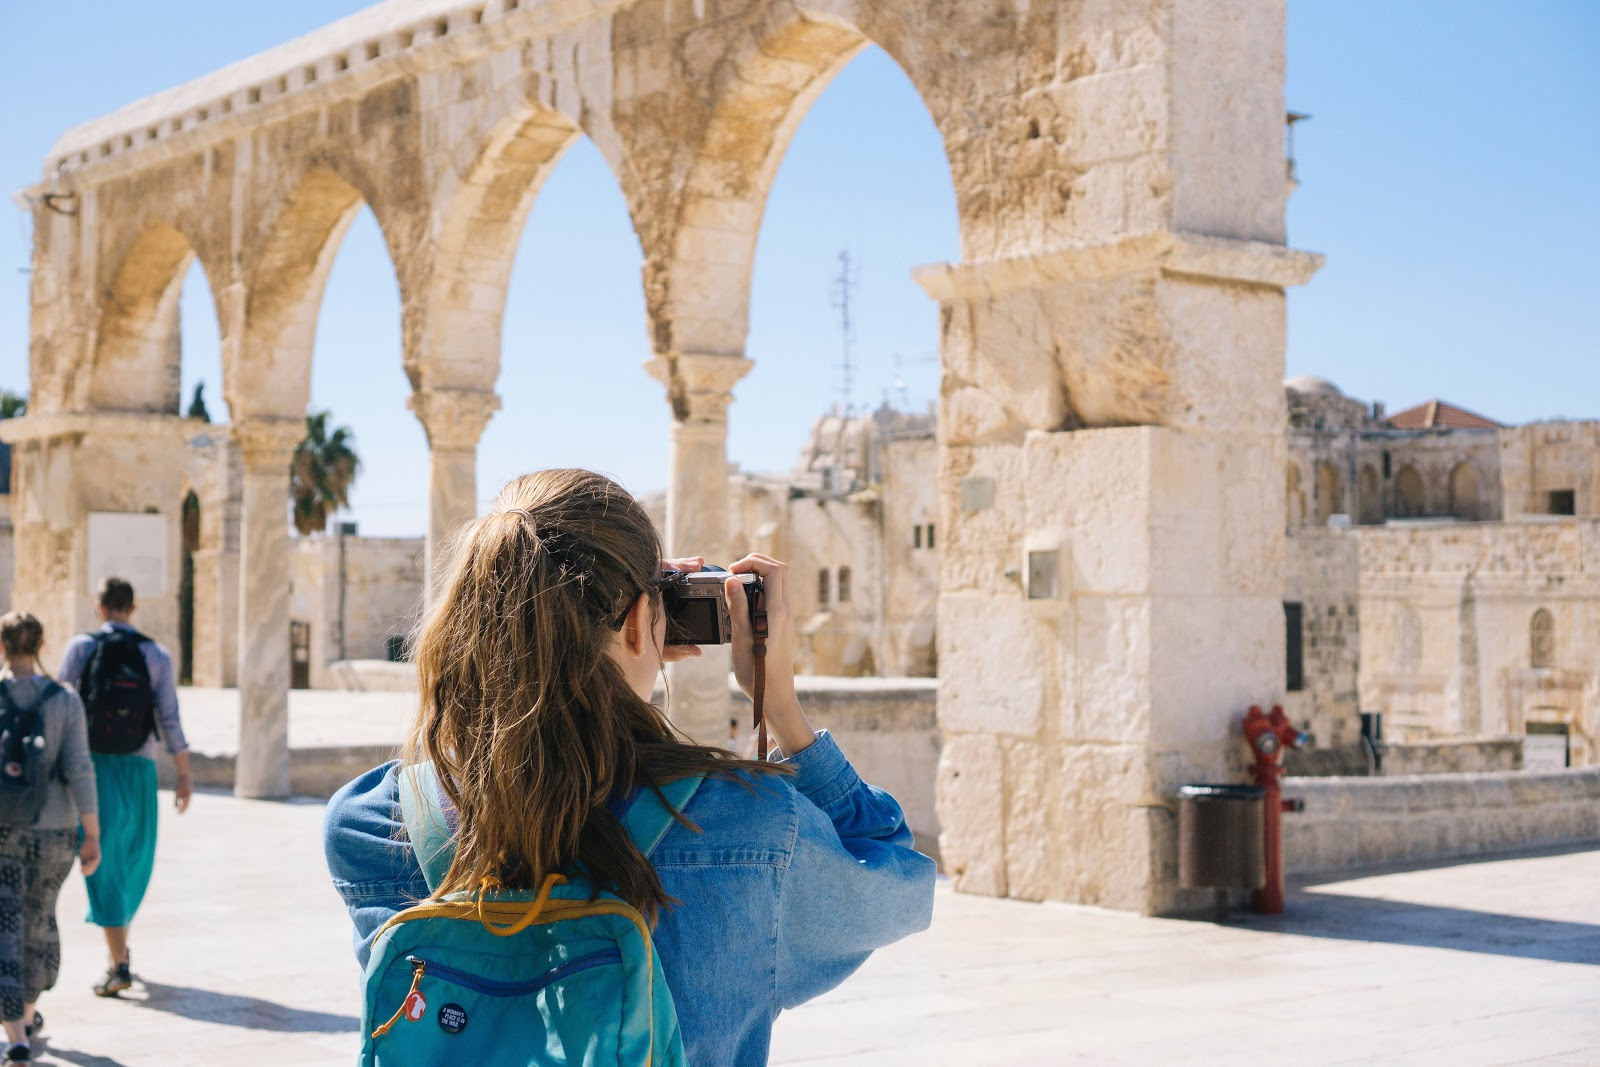 a young woman with a ponytail takes a photo of ancient ruins on her travels